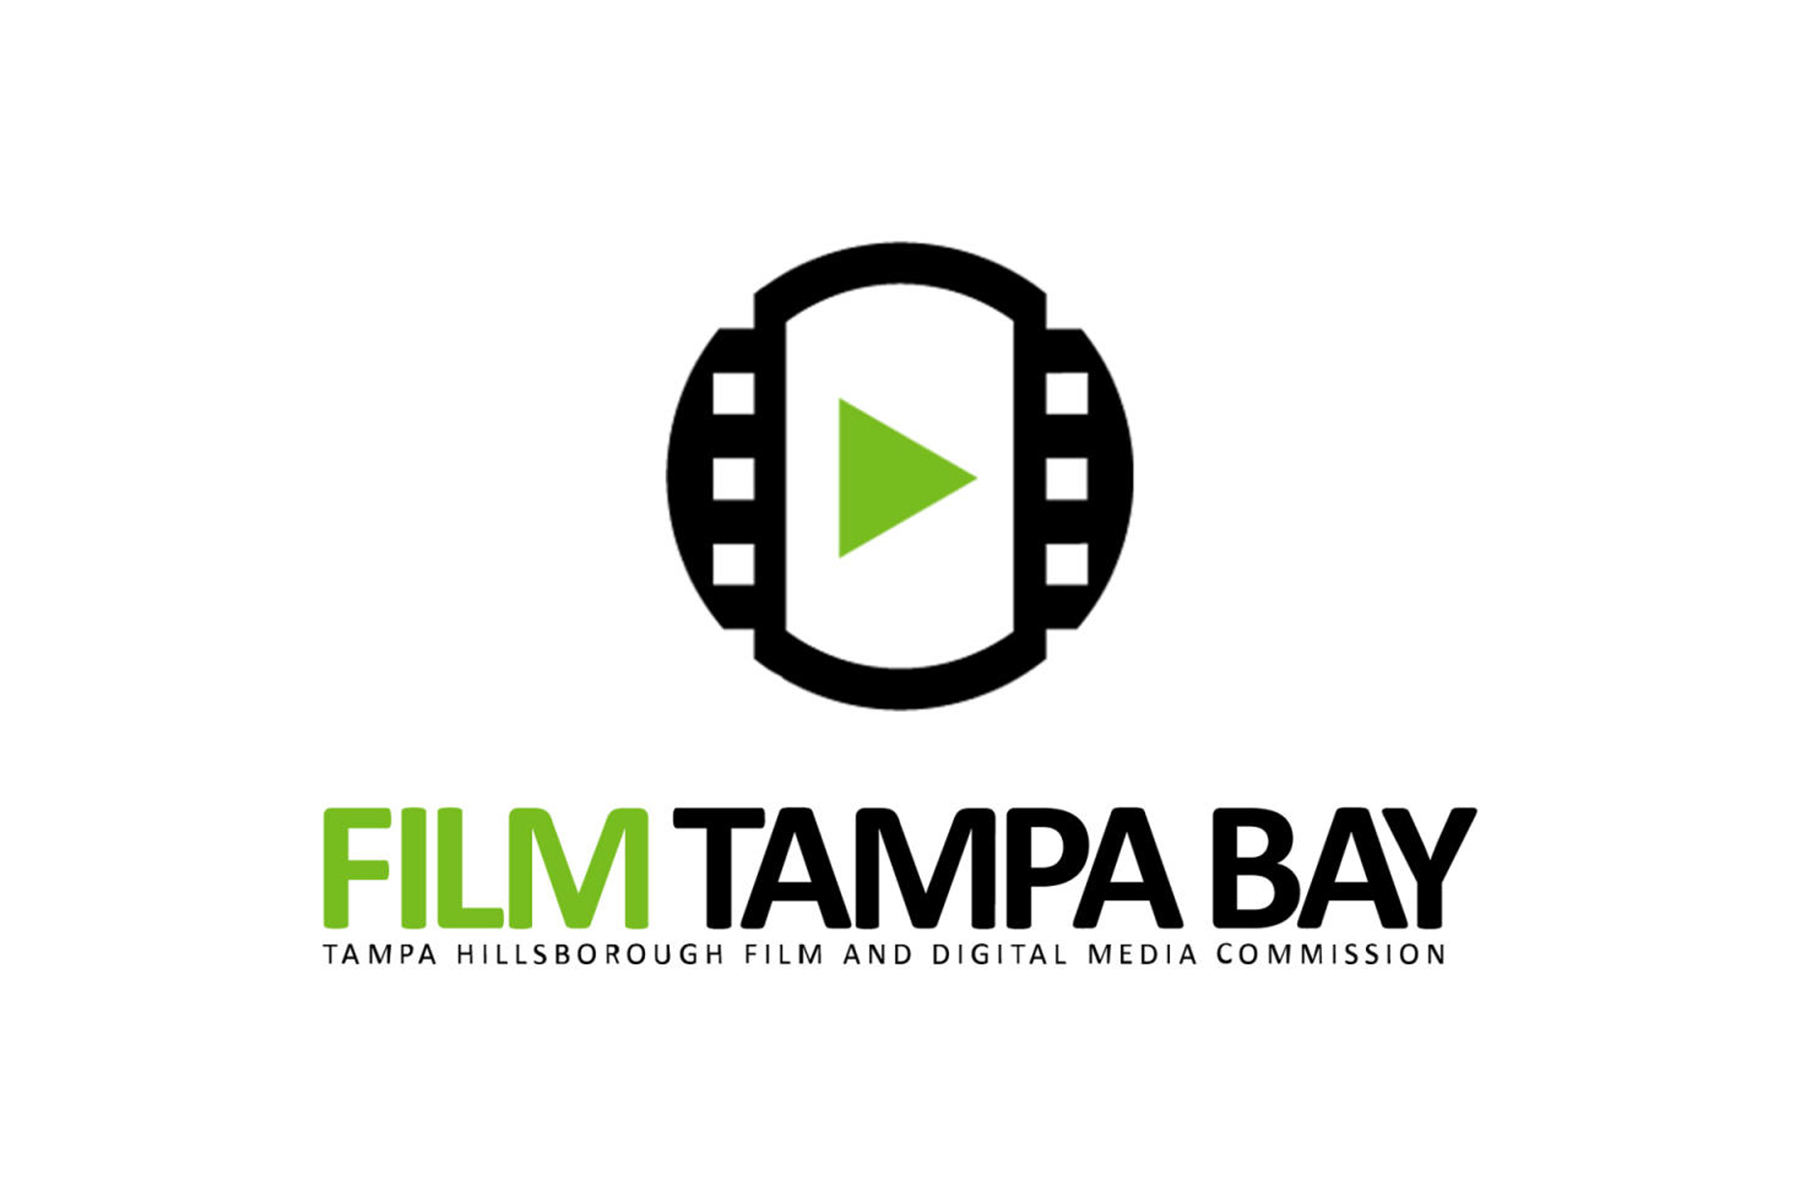 Film Tampa Bay.jpg